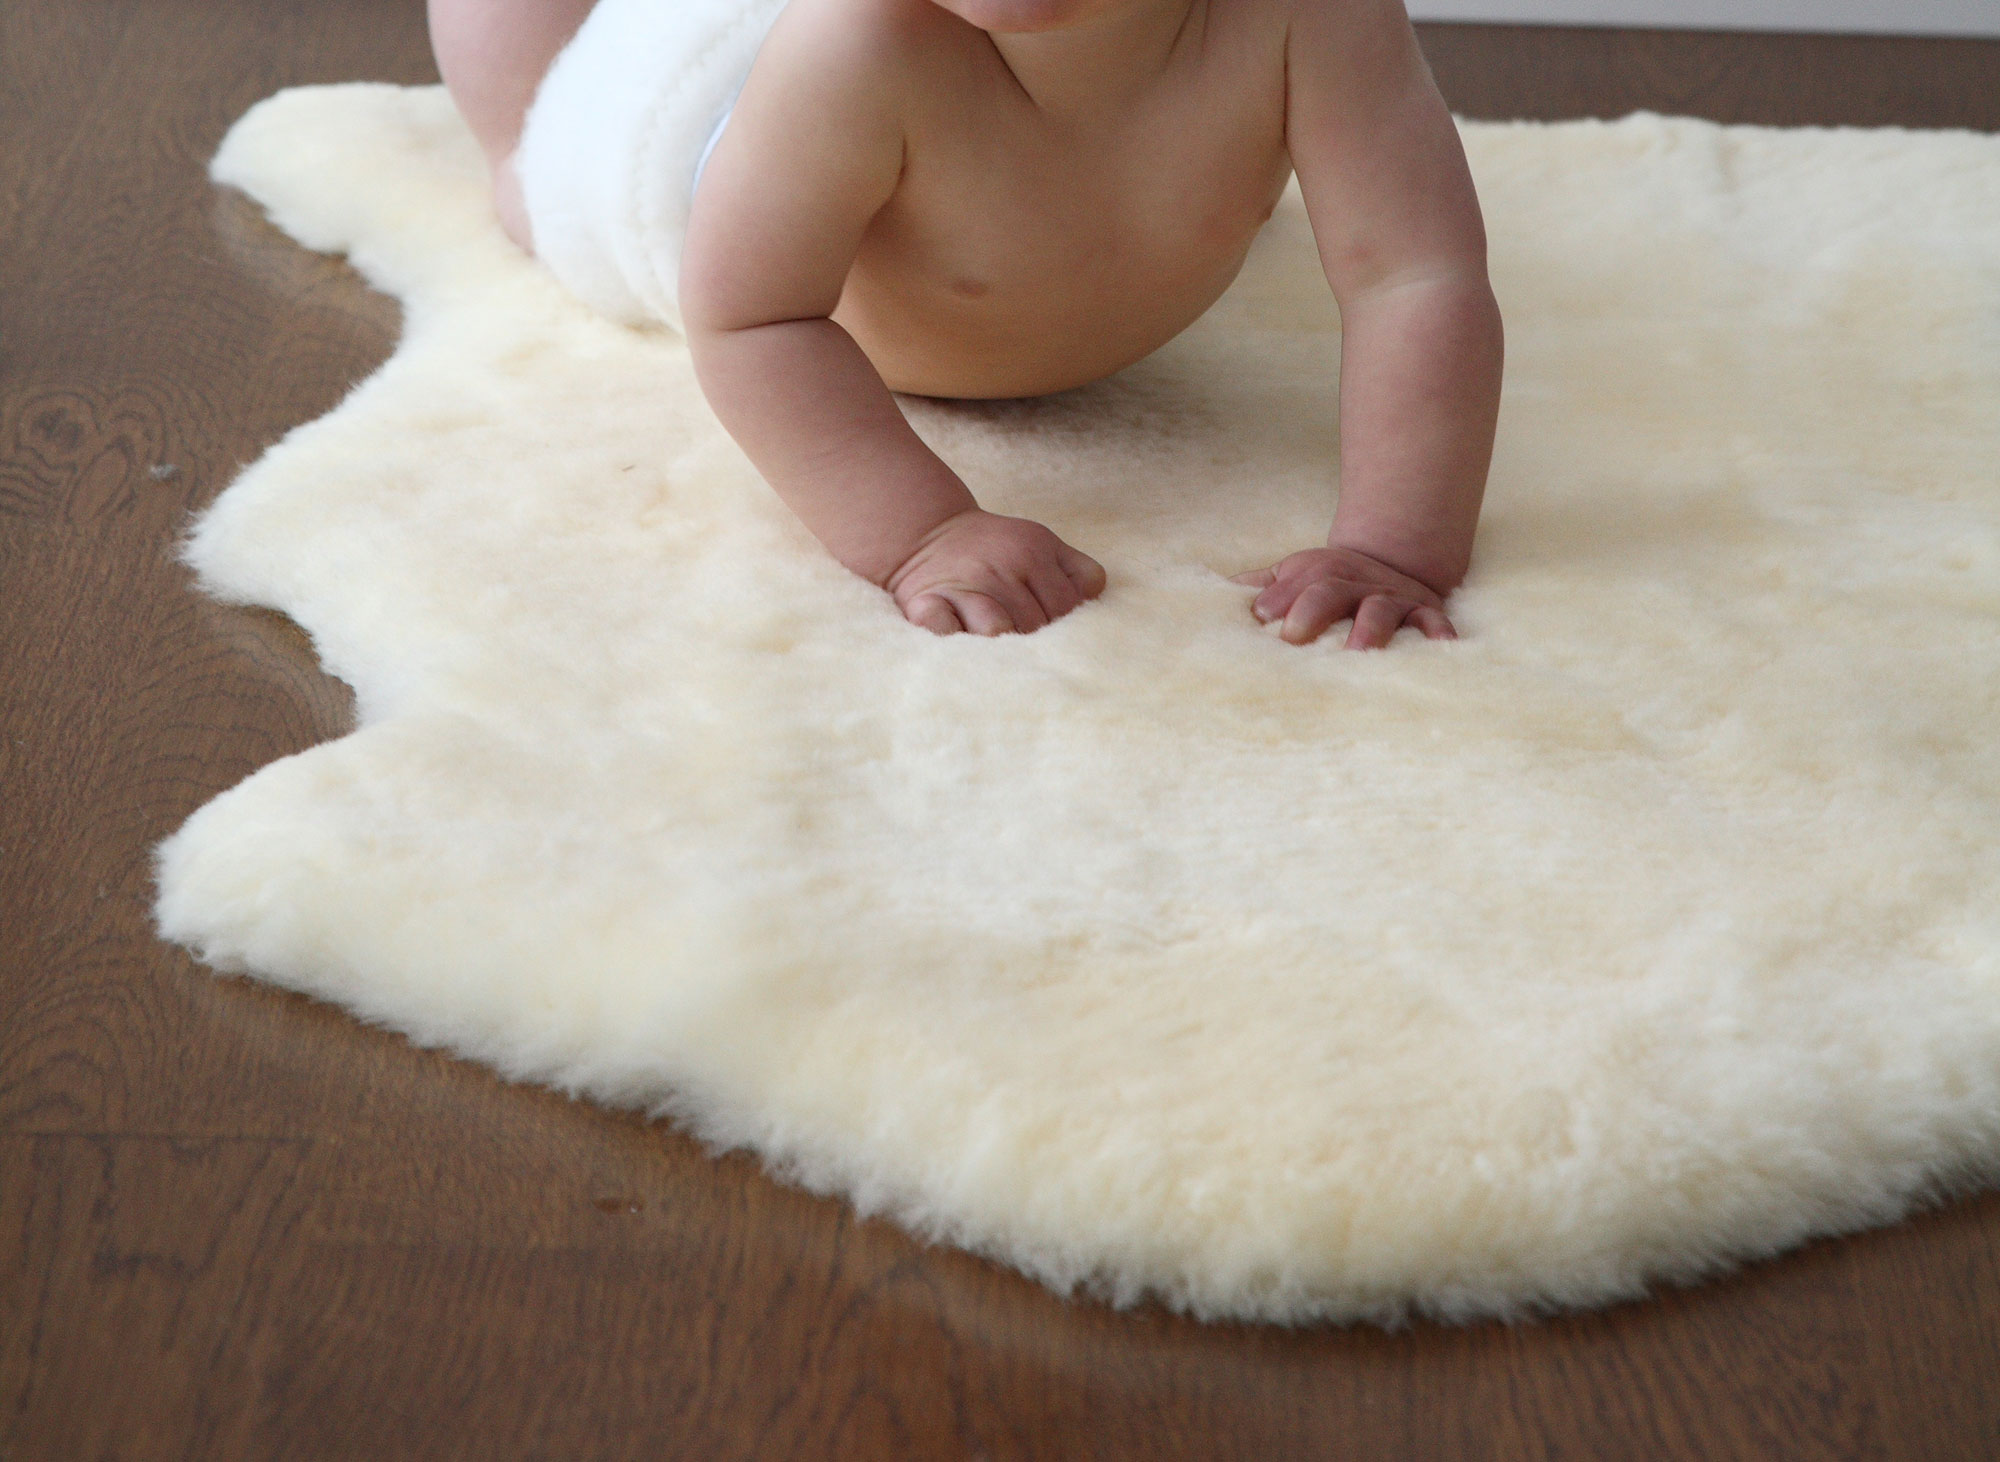 Shorn Infant Care Lambskin Rug For Baby